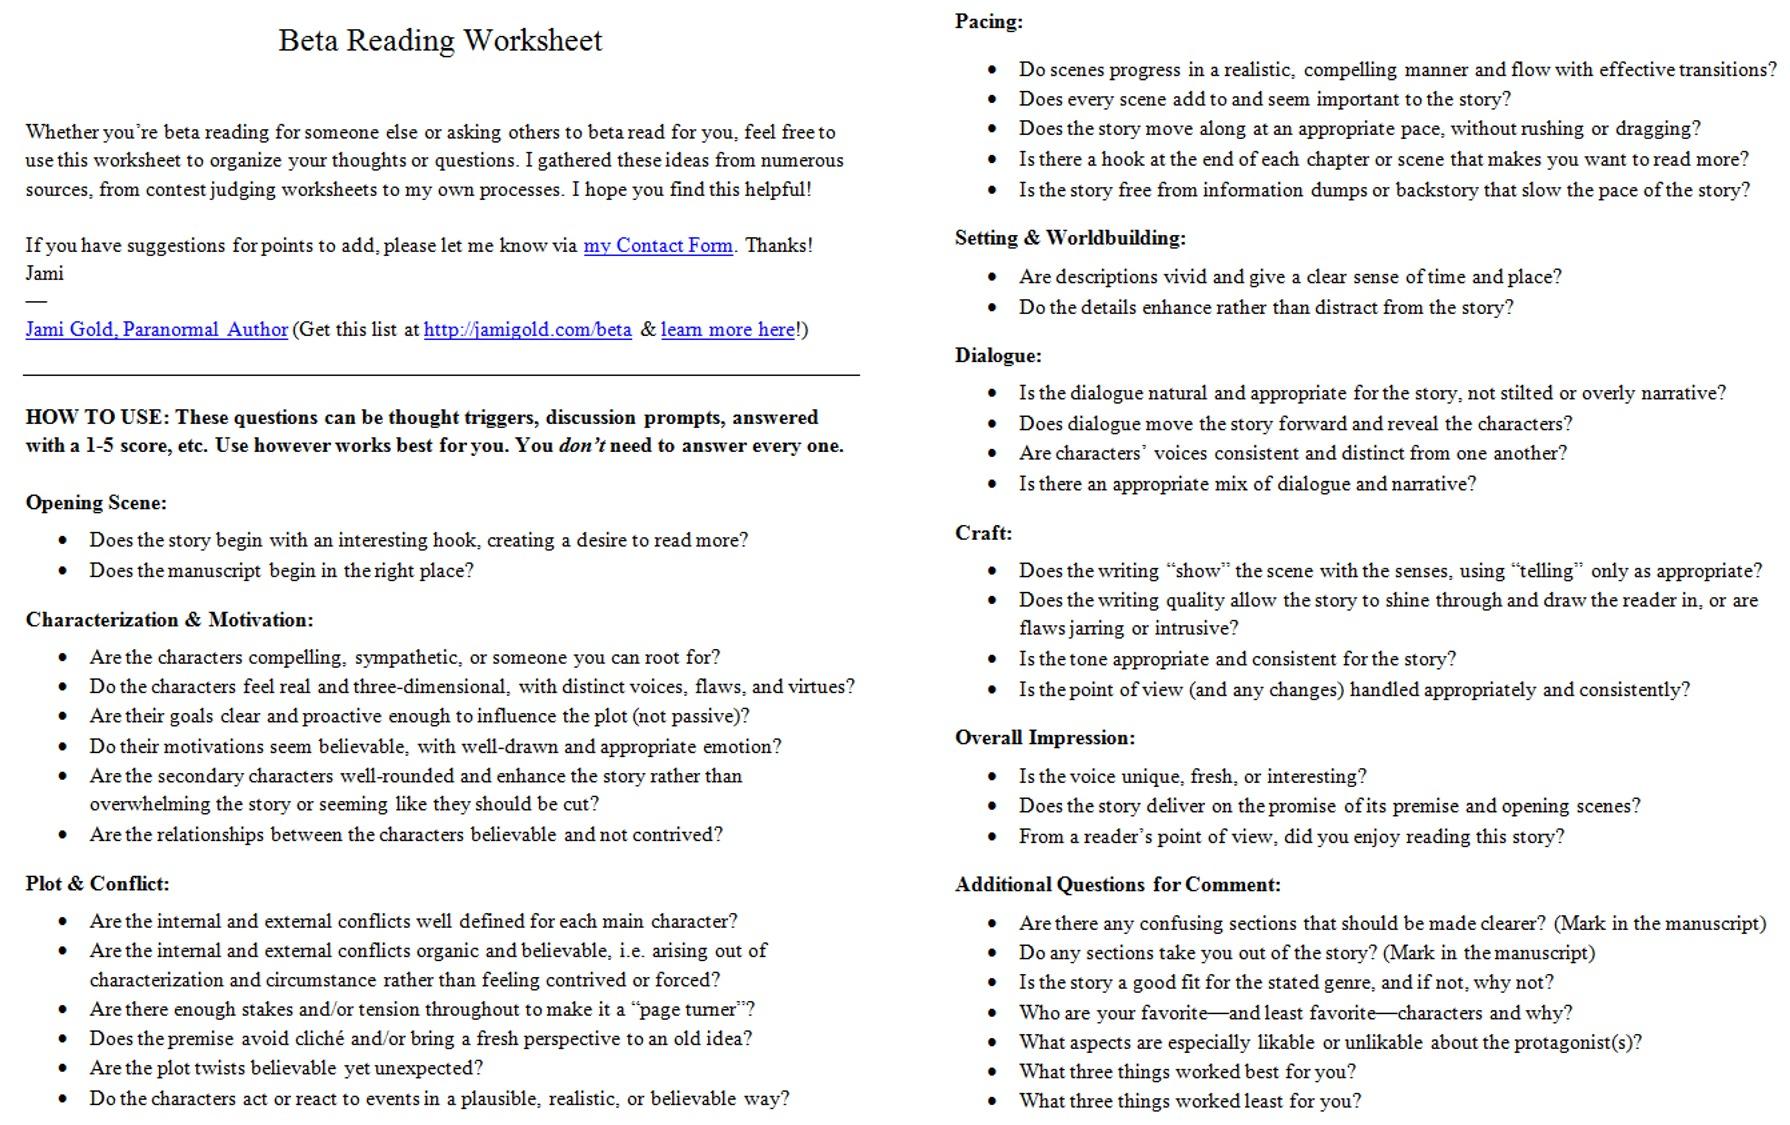 Weirdmailus  Inspiring Worksheets For Writers  Jami Gold Paranormal Author With Glamorous Screen Shot Of The Twopage Beta Reading Worksheet With Captivating Bill Nye Gravity Worksheet Also Free Handwriting Worksheet Maker In Addition Number  Worksheets And Finding Perimeter Worksheets As Well As Printable First Grade Worksheets Additionally Limiting Reagent And Percent Yield Worksheet Answers From Jamigoldcom With Weirdmailus  Glamorous Worksheets For Writers  Jami Gold Paranormal Author With Captivating Screen Shot Of The Twopage Beta Reading Worksheet And Inspiring Bill Nye Gravity Worksheet Also Free Handwriting Worksheet Maker In Addition Number  Worksheets From Jamigoldcom